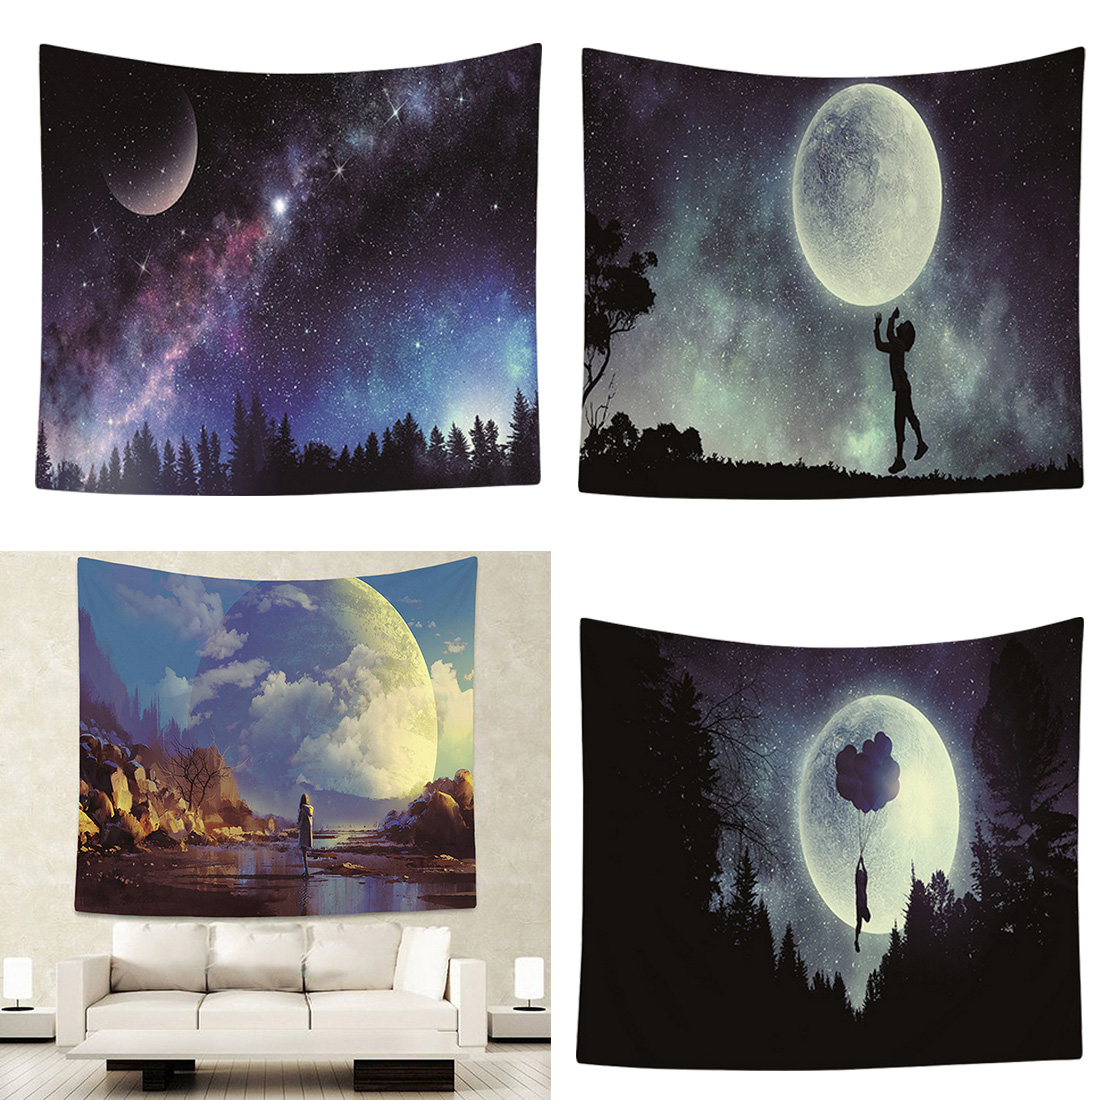 Night Sky Wall Tapestry Decor Wall Hanging Towel Forest Starry Night Tapestries